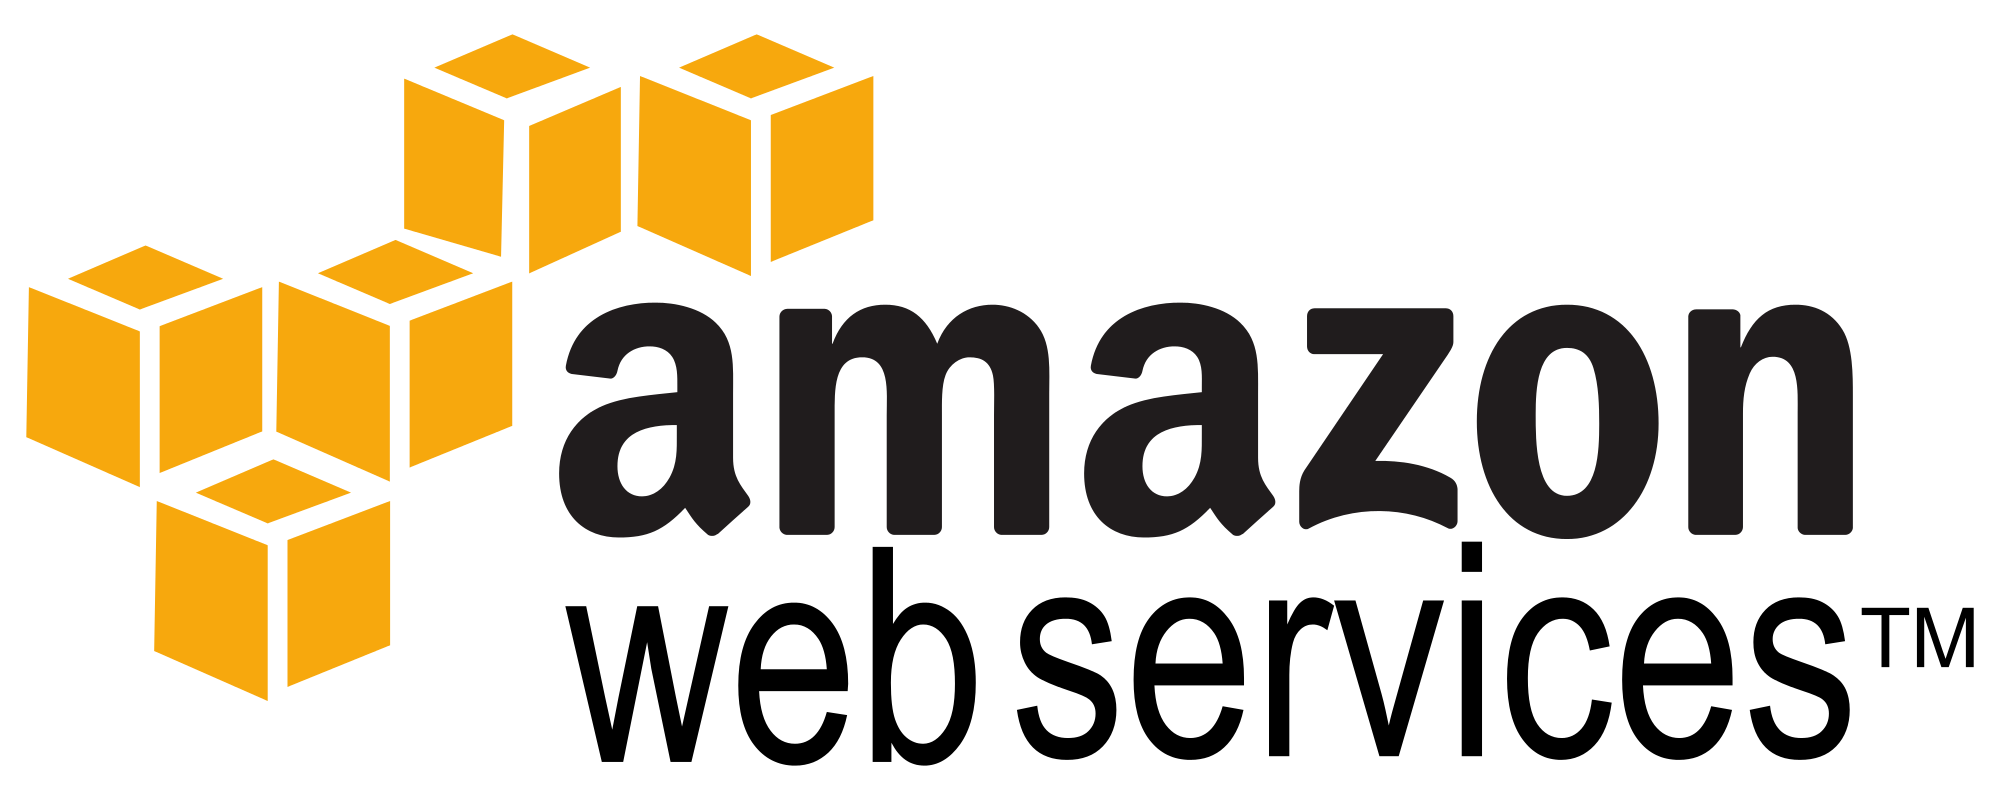 Amazon Web Services introduces 4 new services for IoT applications